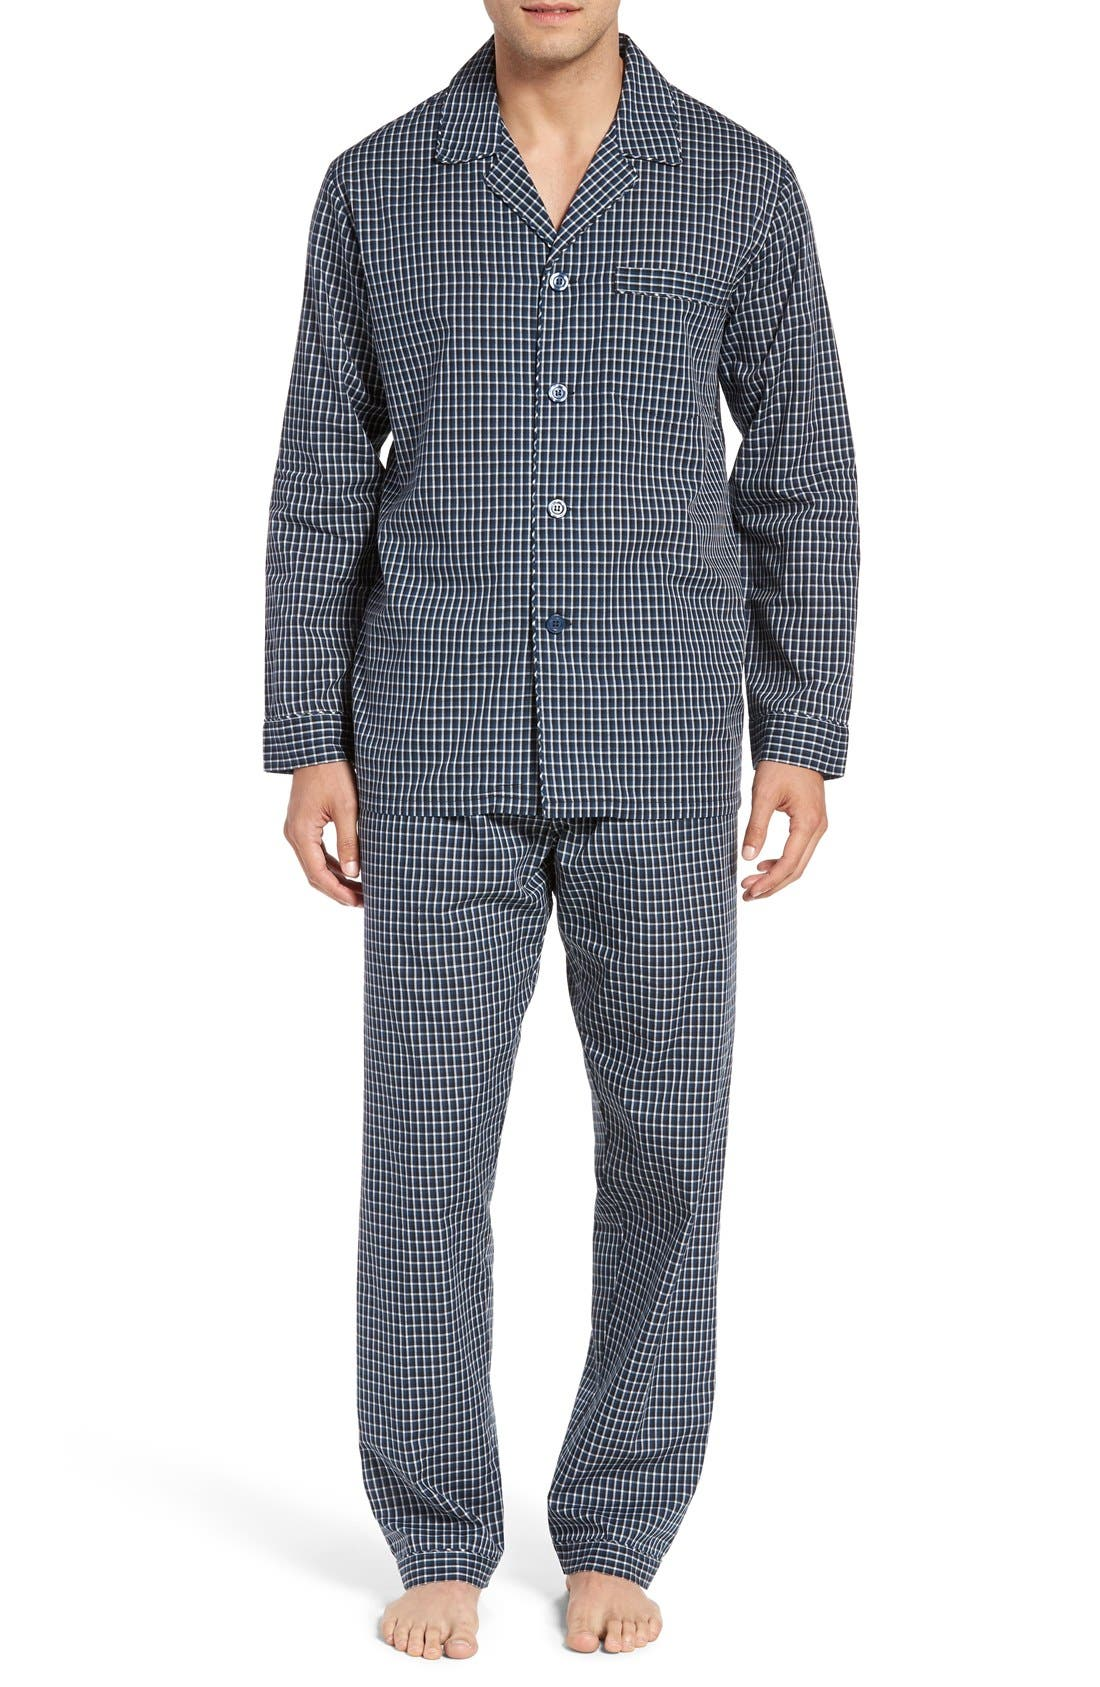 'CVC' Cotton Blend Pajamas,                         Main,                         color, 001